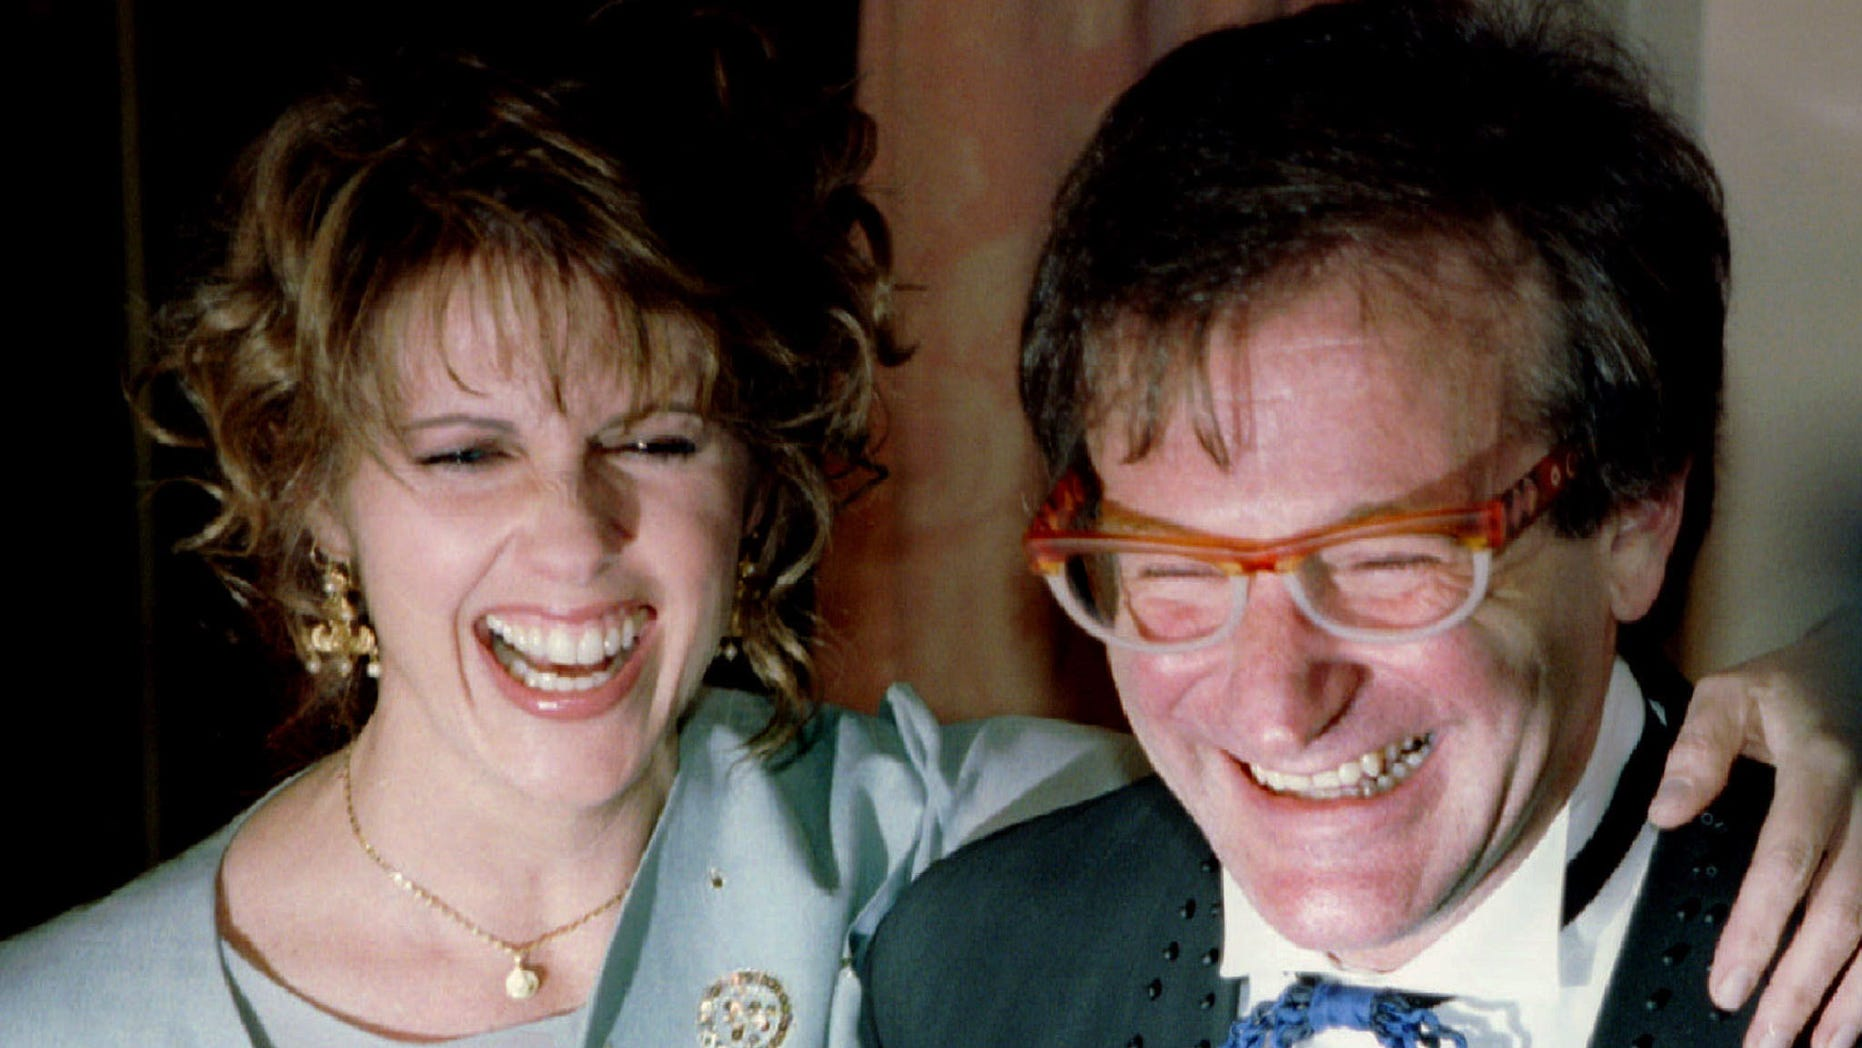 """Actress Pam Dawber (L) shares a laugh with actor Robin Williams as they pose for photographers before the annual American Museum of the Moving Image Tribute dinner February 23, 1995 in New York. Williams and Dawber stared in the TV show """"Mork and Mindy"""". Williams is this years honoree at the tribute  REUTERS/Jeff Christensen - RTXG84Q"""